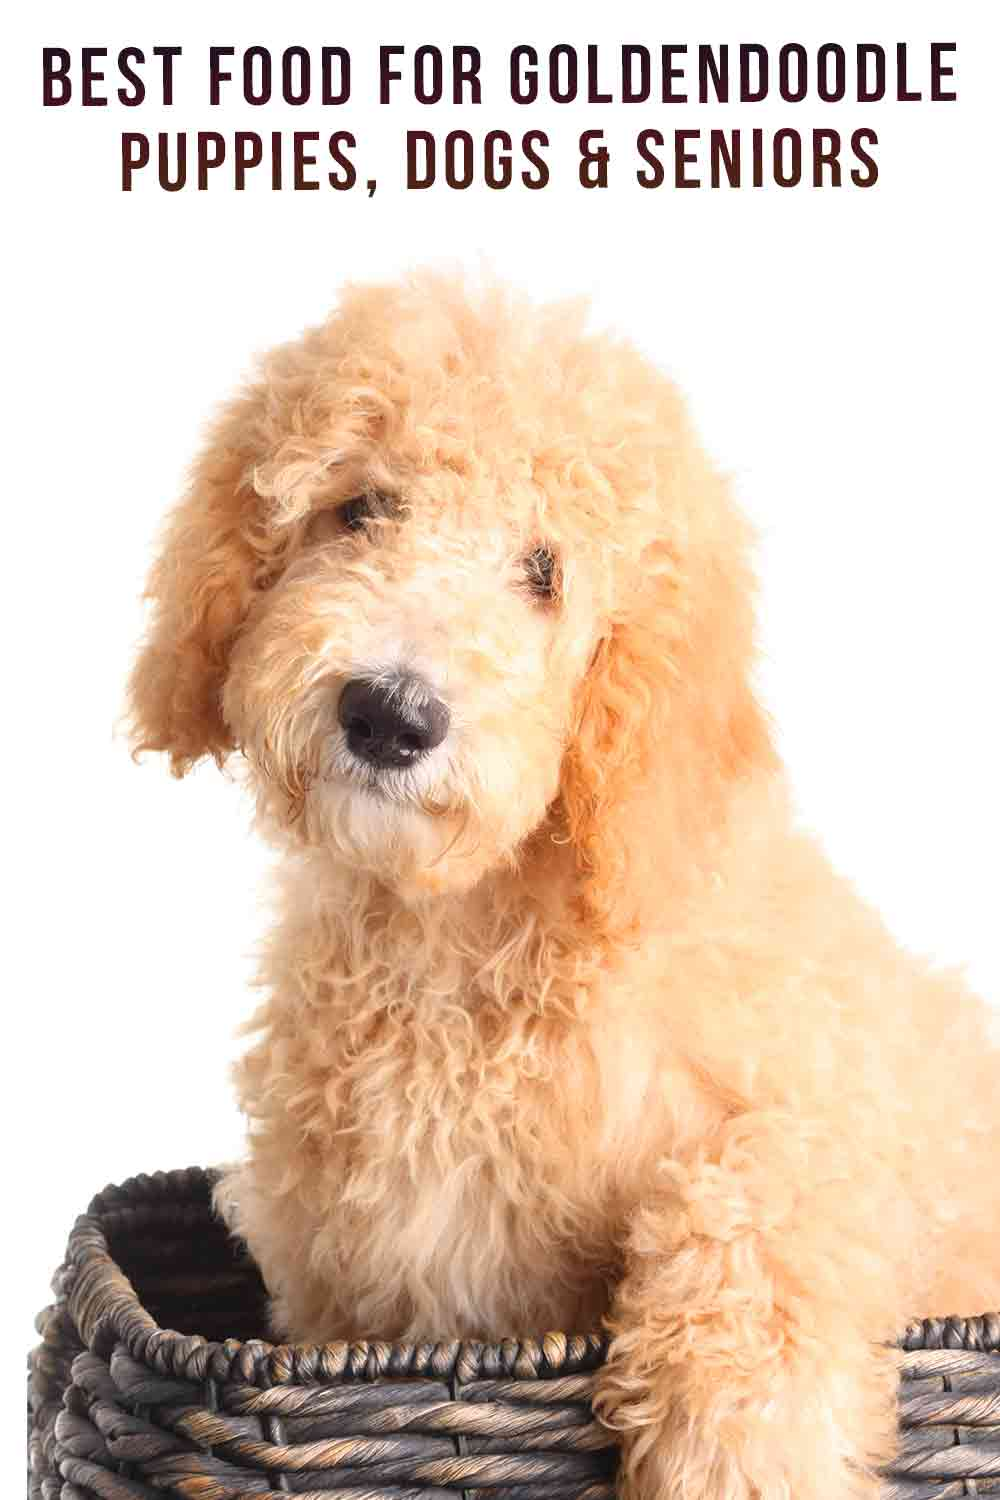 Best Food For Goldendoodle Puppies, Dogs & Seniors_